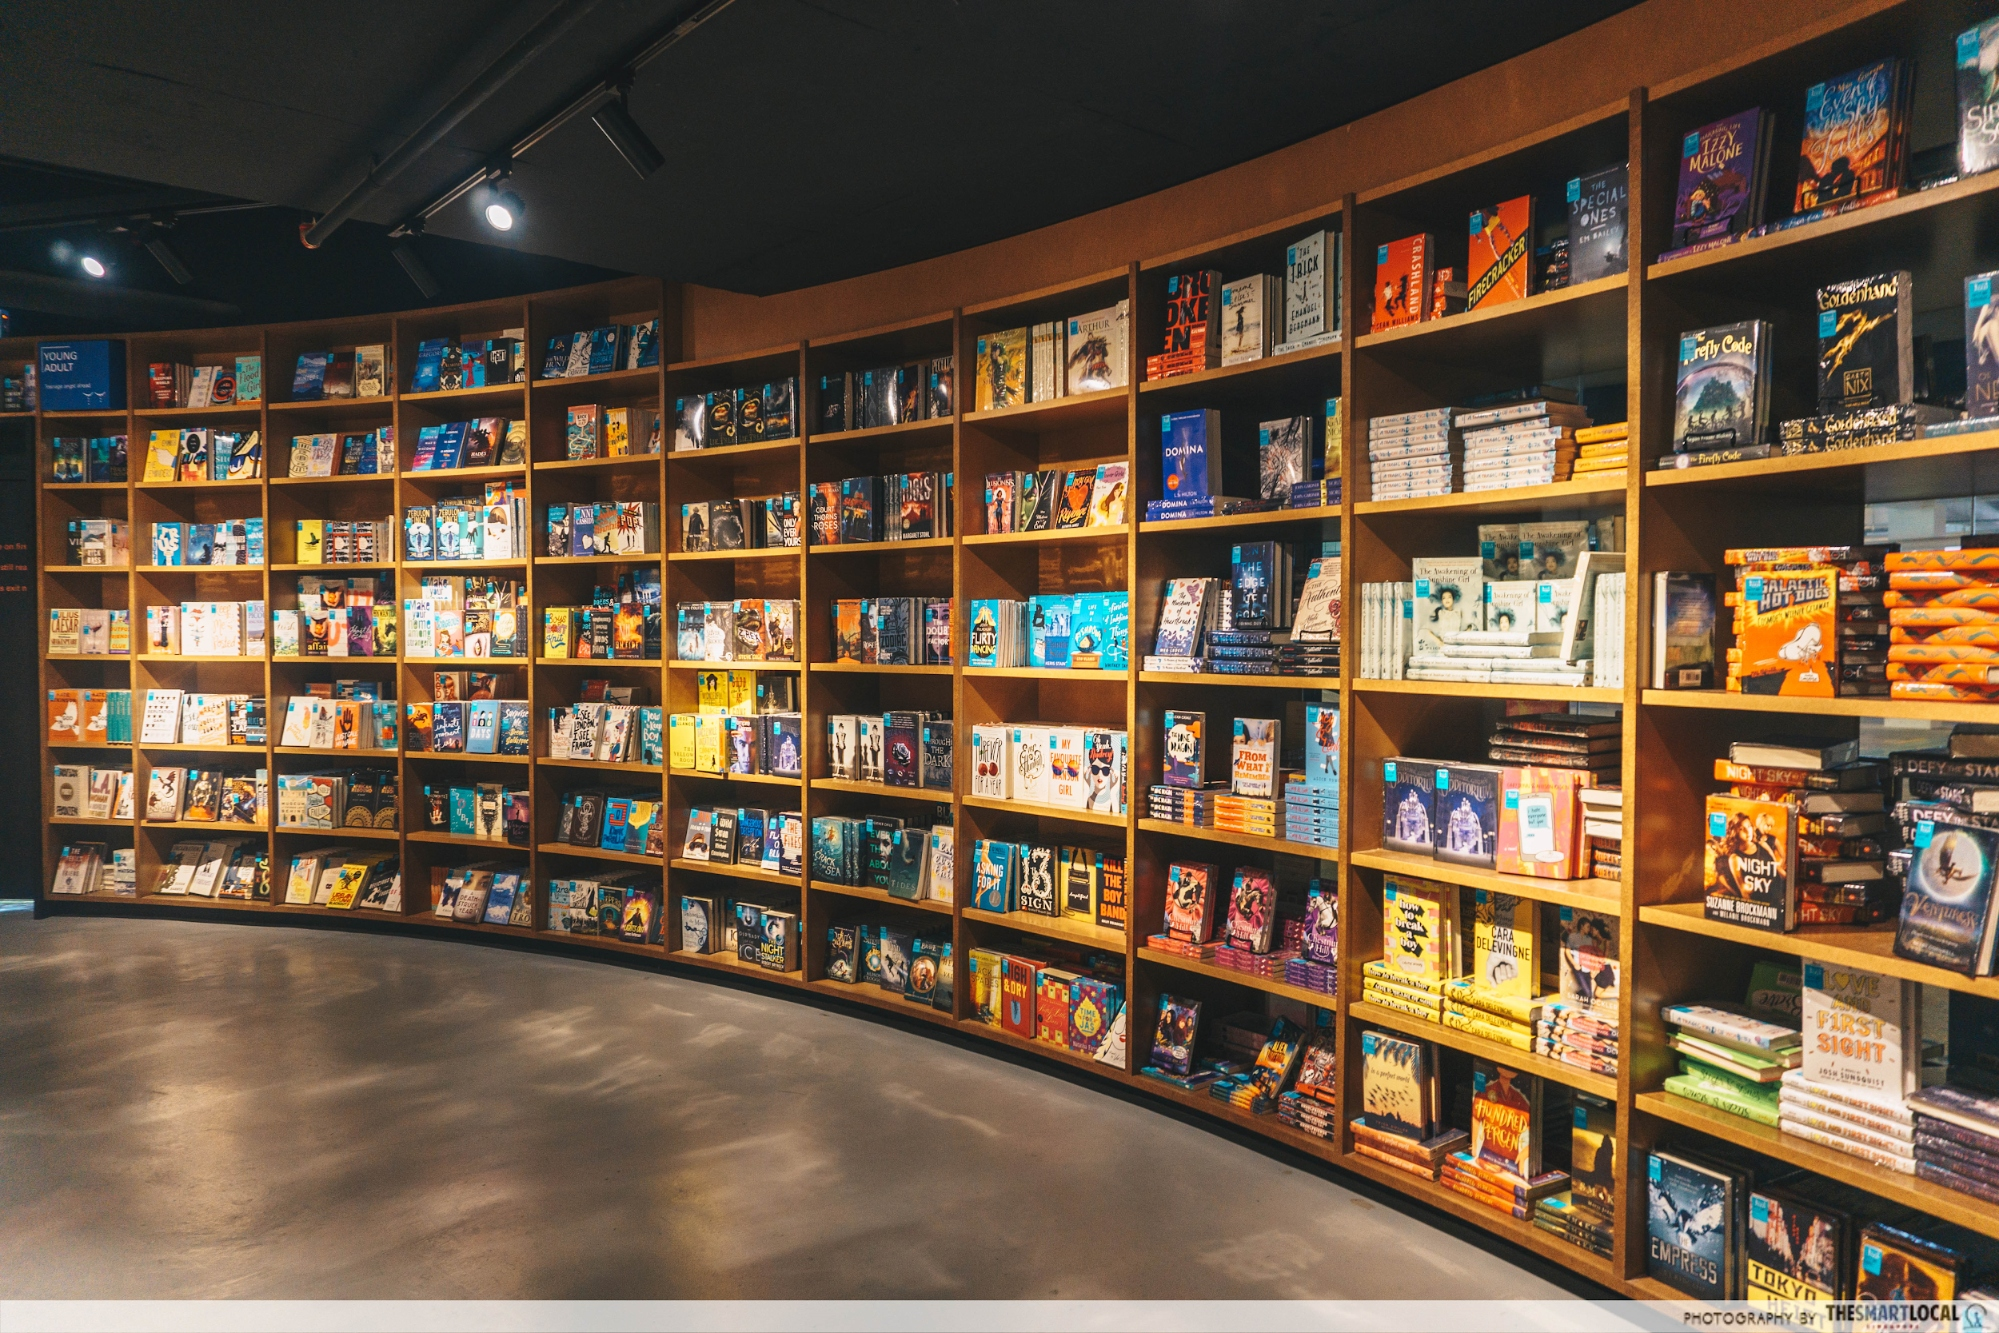 More essential shops open under Phase 1 - book stores